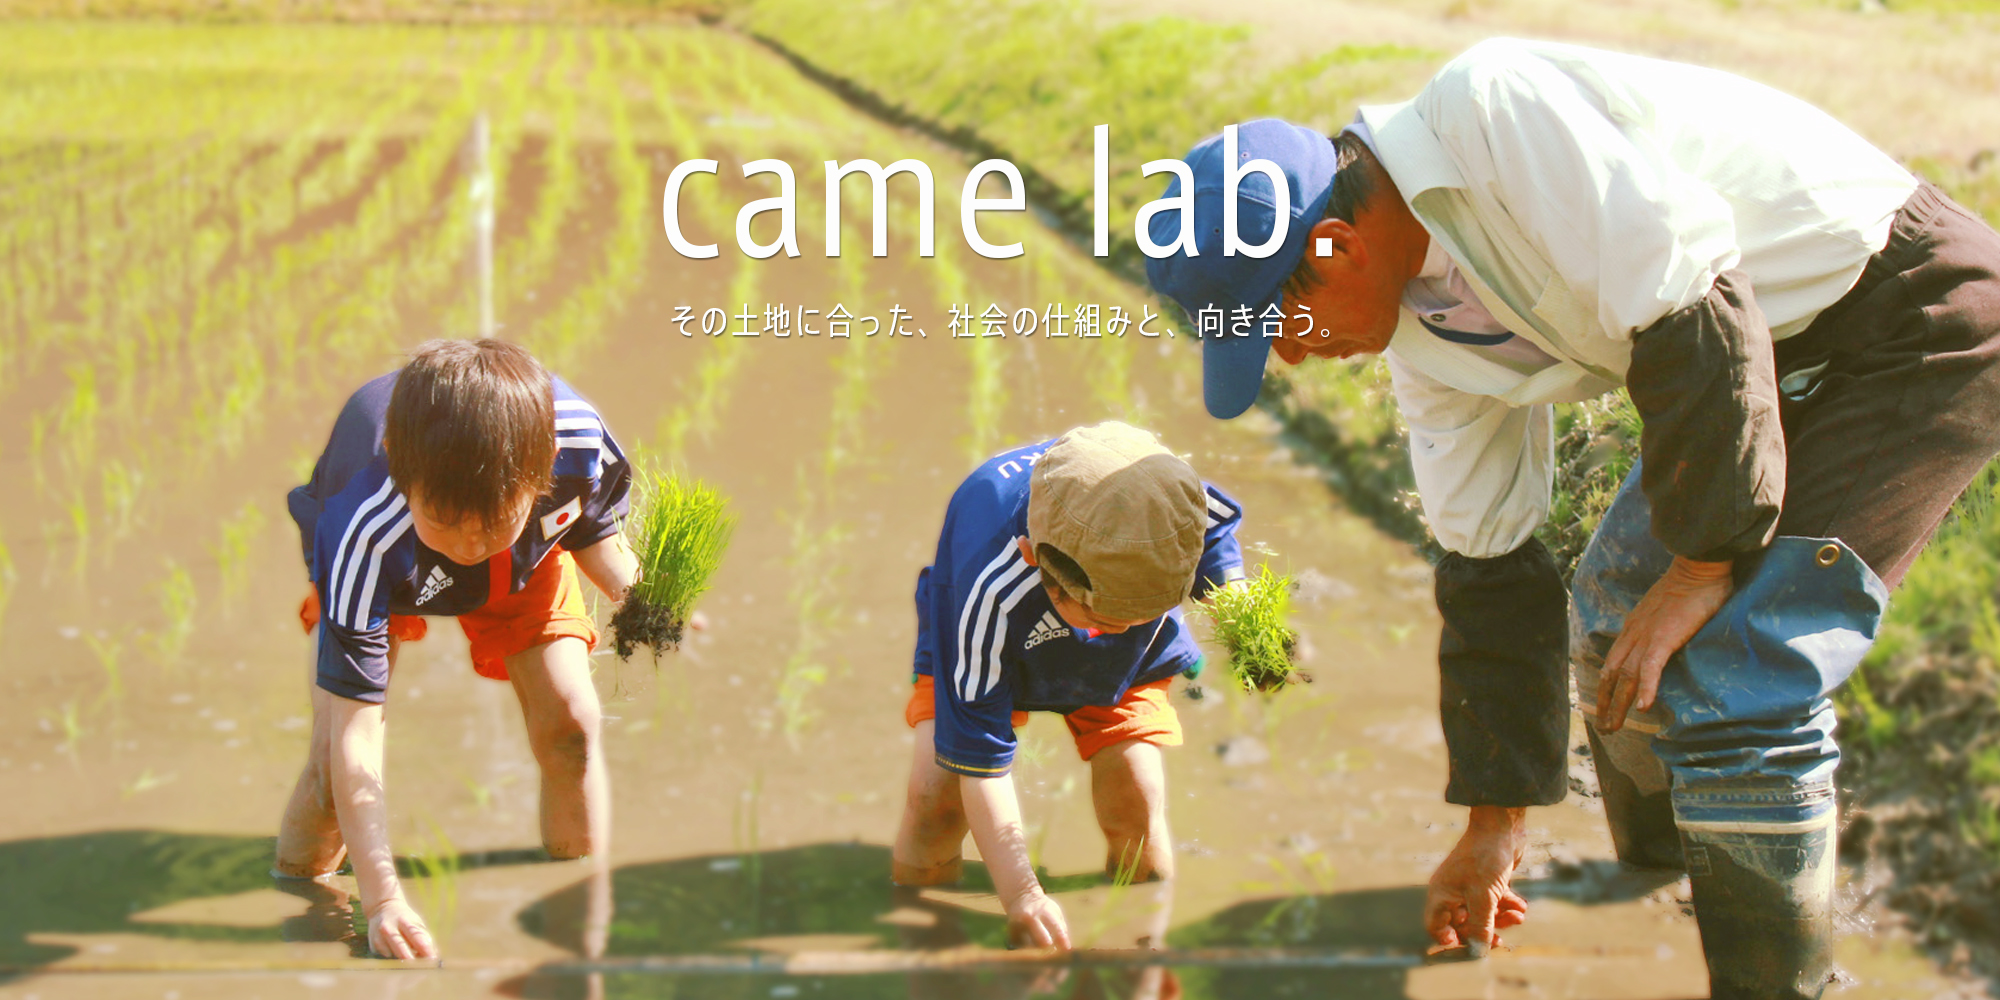 came-lab